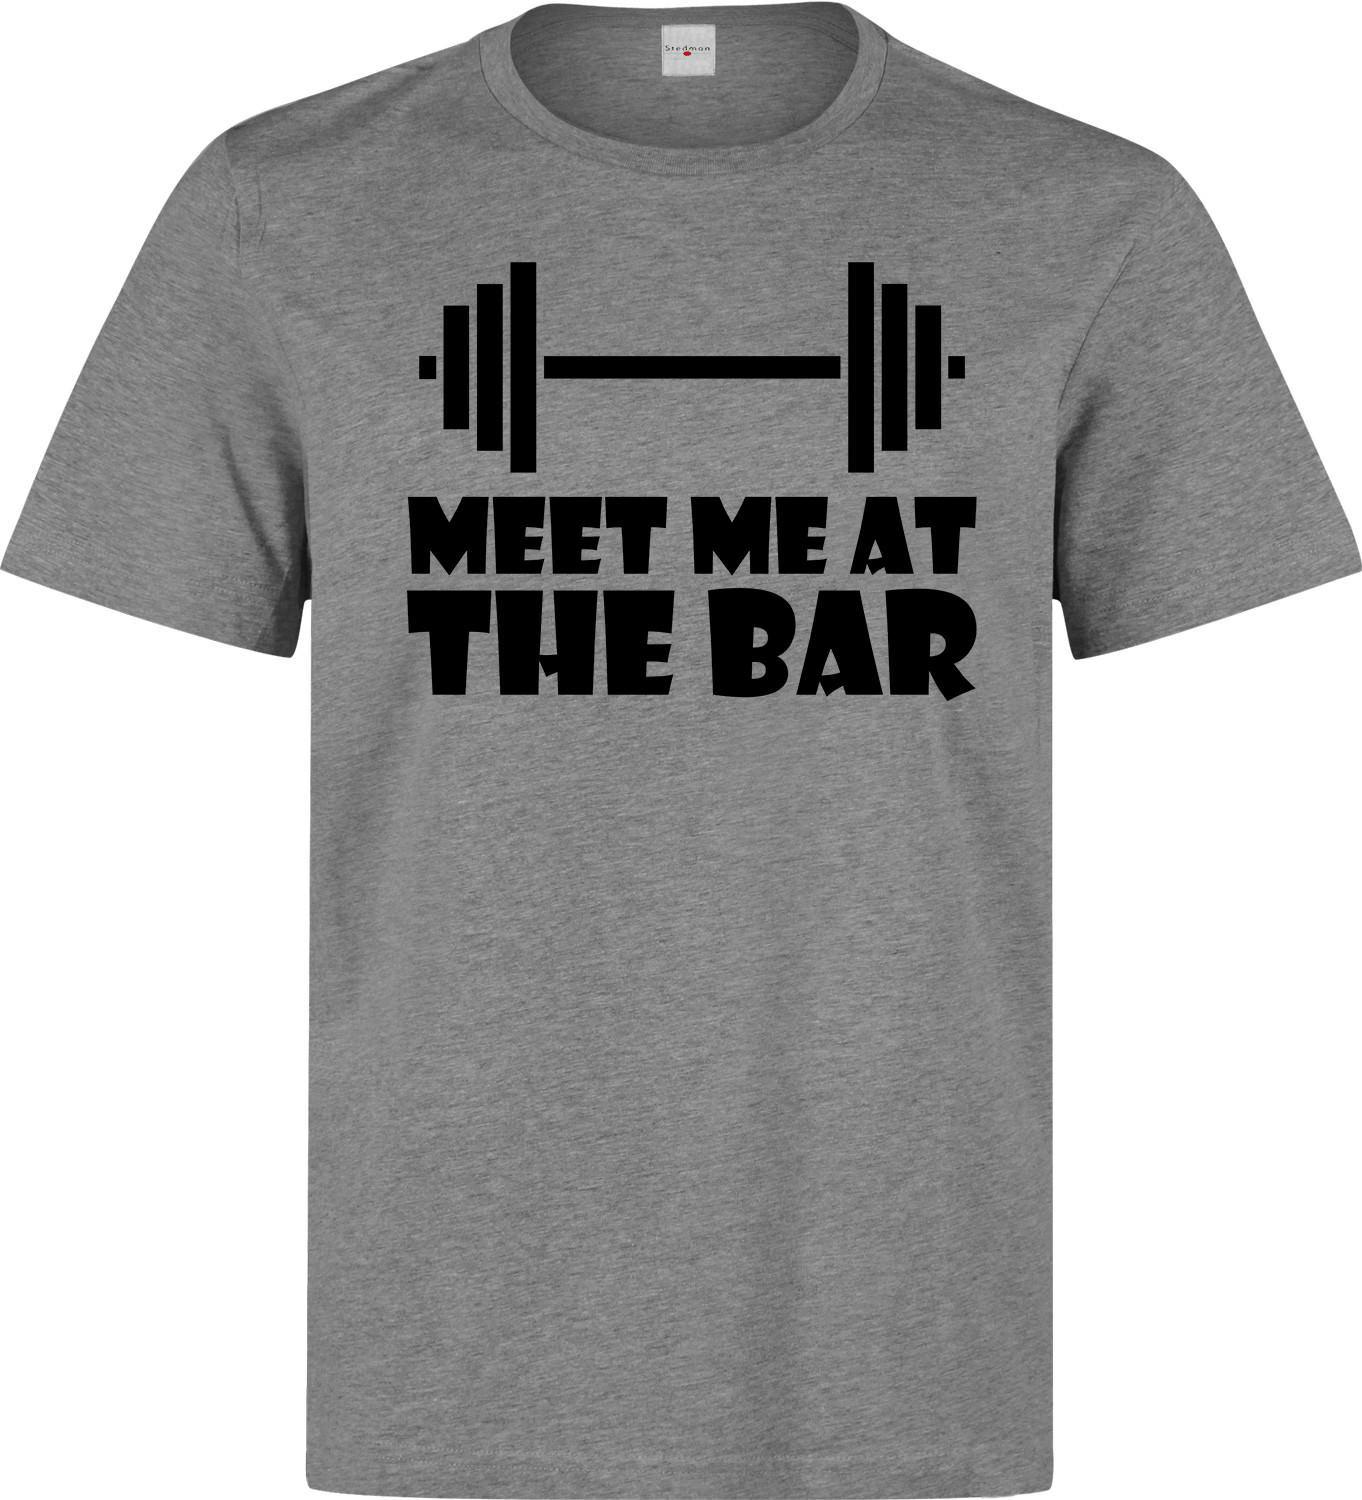 ba518cb9 Meet Me At The Bar Funny Weightlifting men's (woman's available) t shirt  grey Short Sleeve Plus Size t-shirt colour jersey Print t shirt